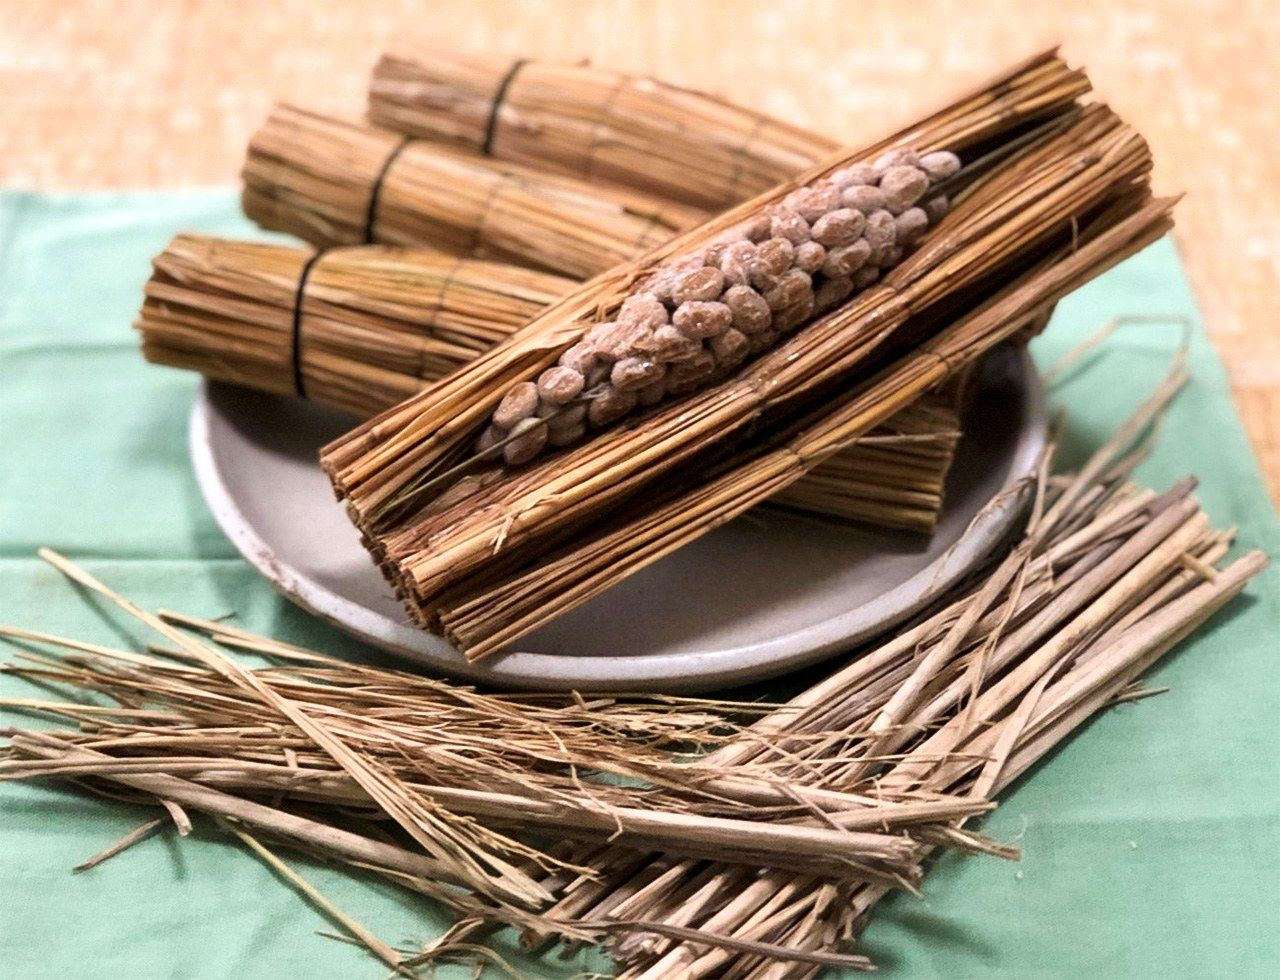 Old-fashioned nattō made by wrapping cooked soybeans in rice straw.